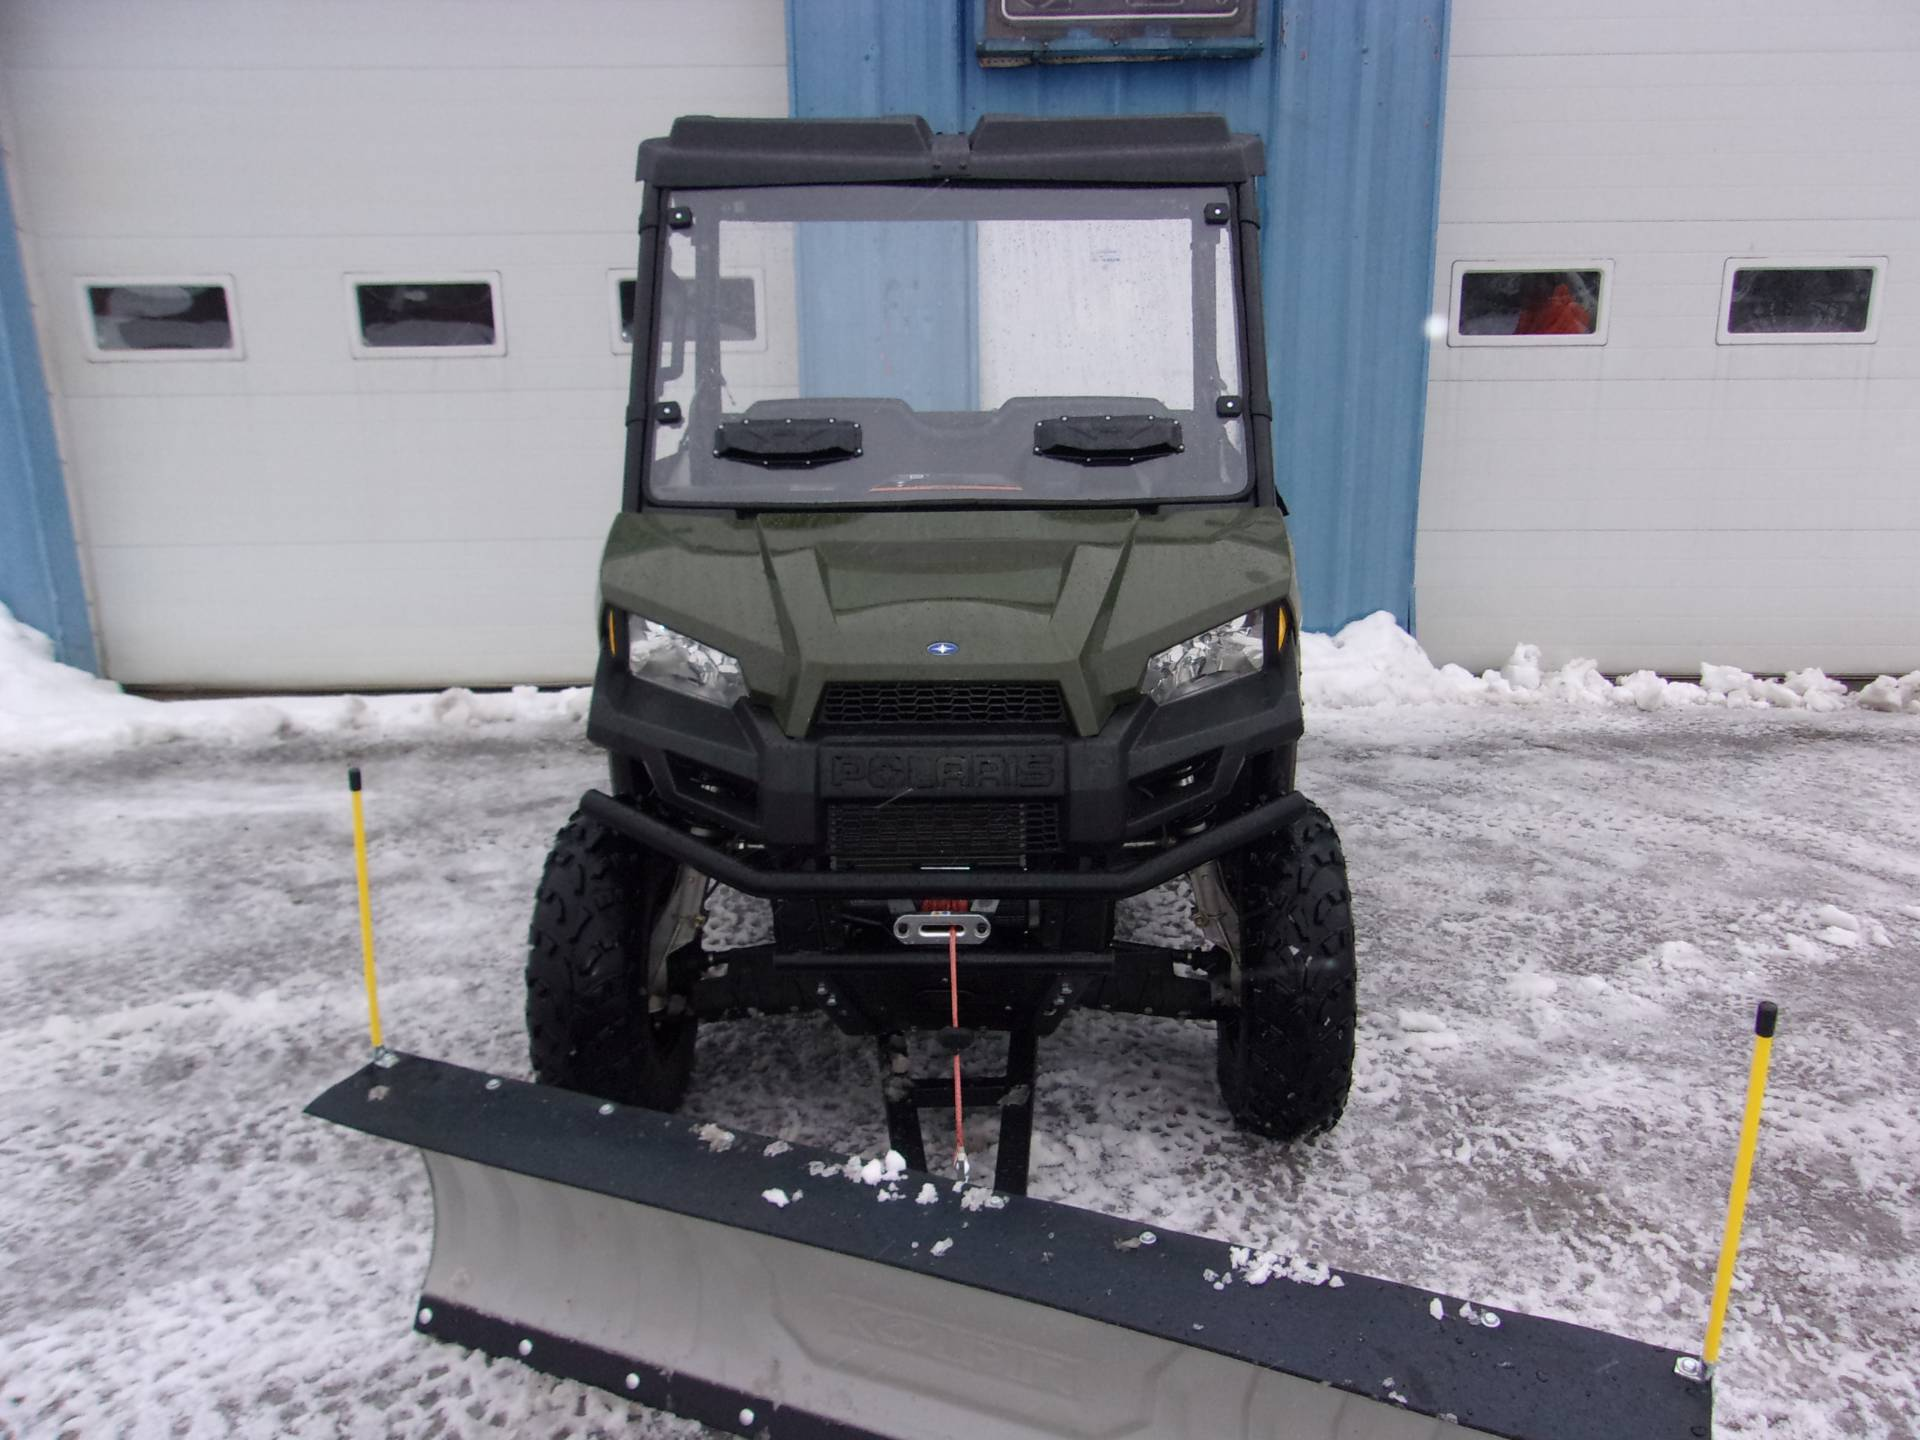 2019 POLARIS RANGER 570 MIDSIZE in Mukwonago, Wisconsin - Photo 3